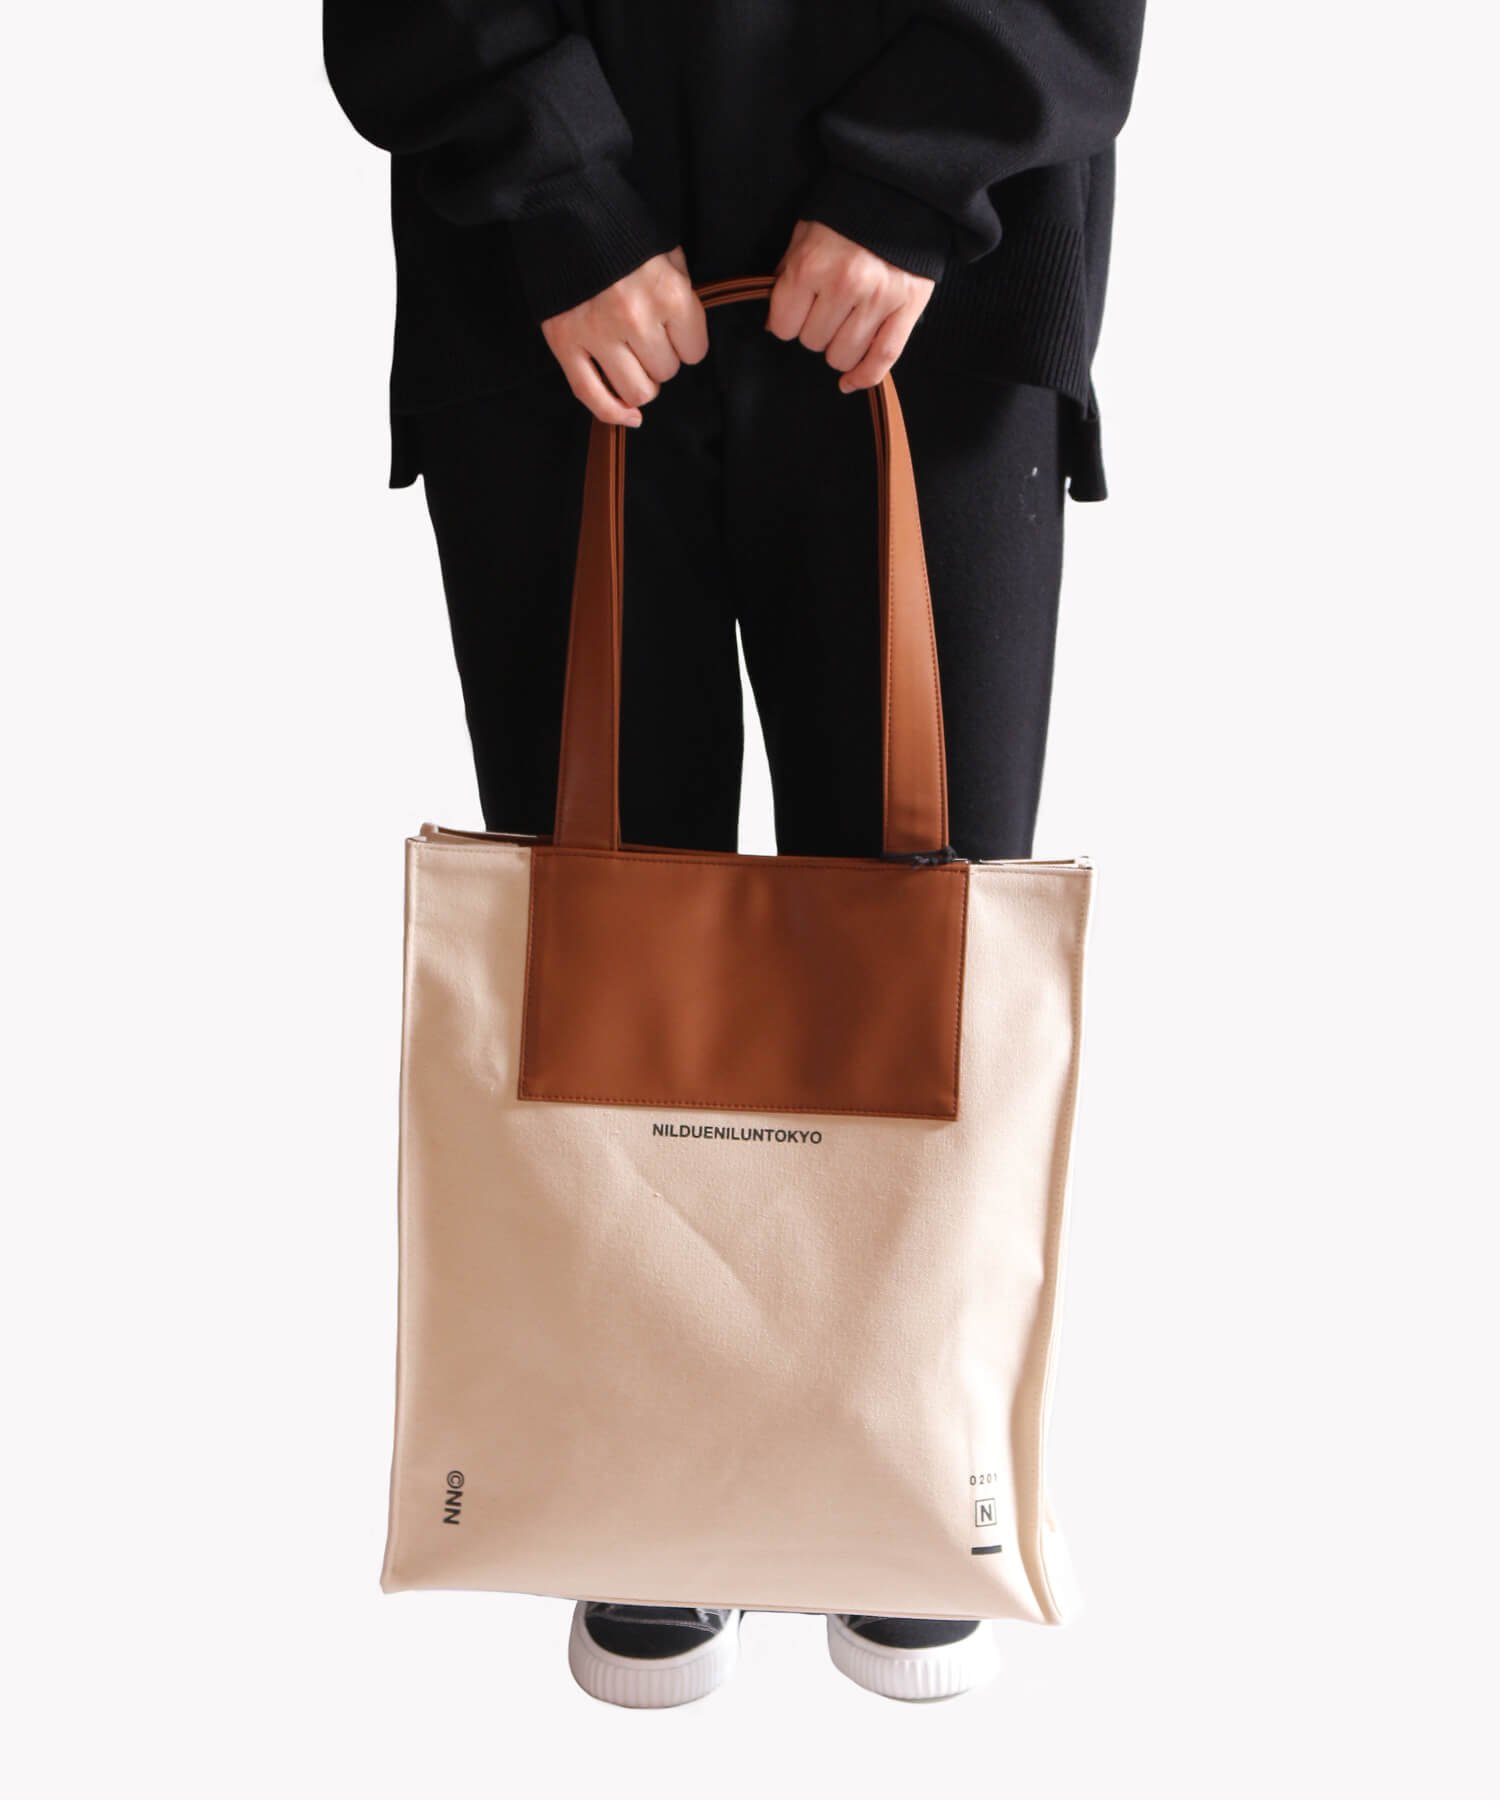 NIL DUE / NIL UN TOKYO / ニル デュエ / ニル アン トーキョー | CANVAS LEATHER TOTE (BROWN) 商品画像5